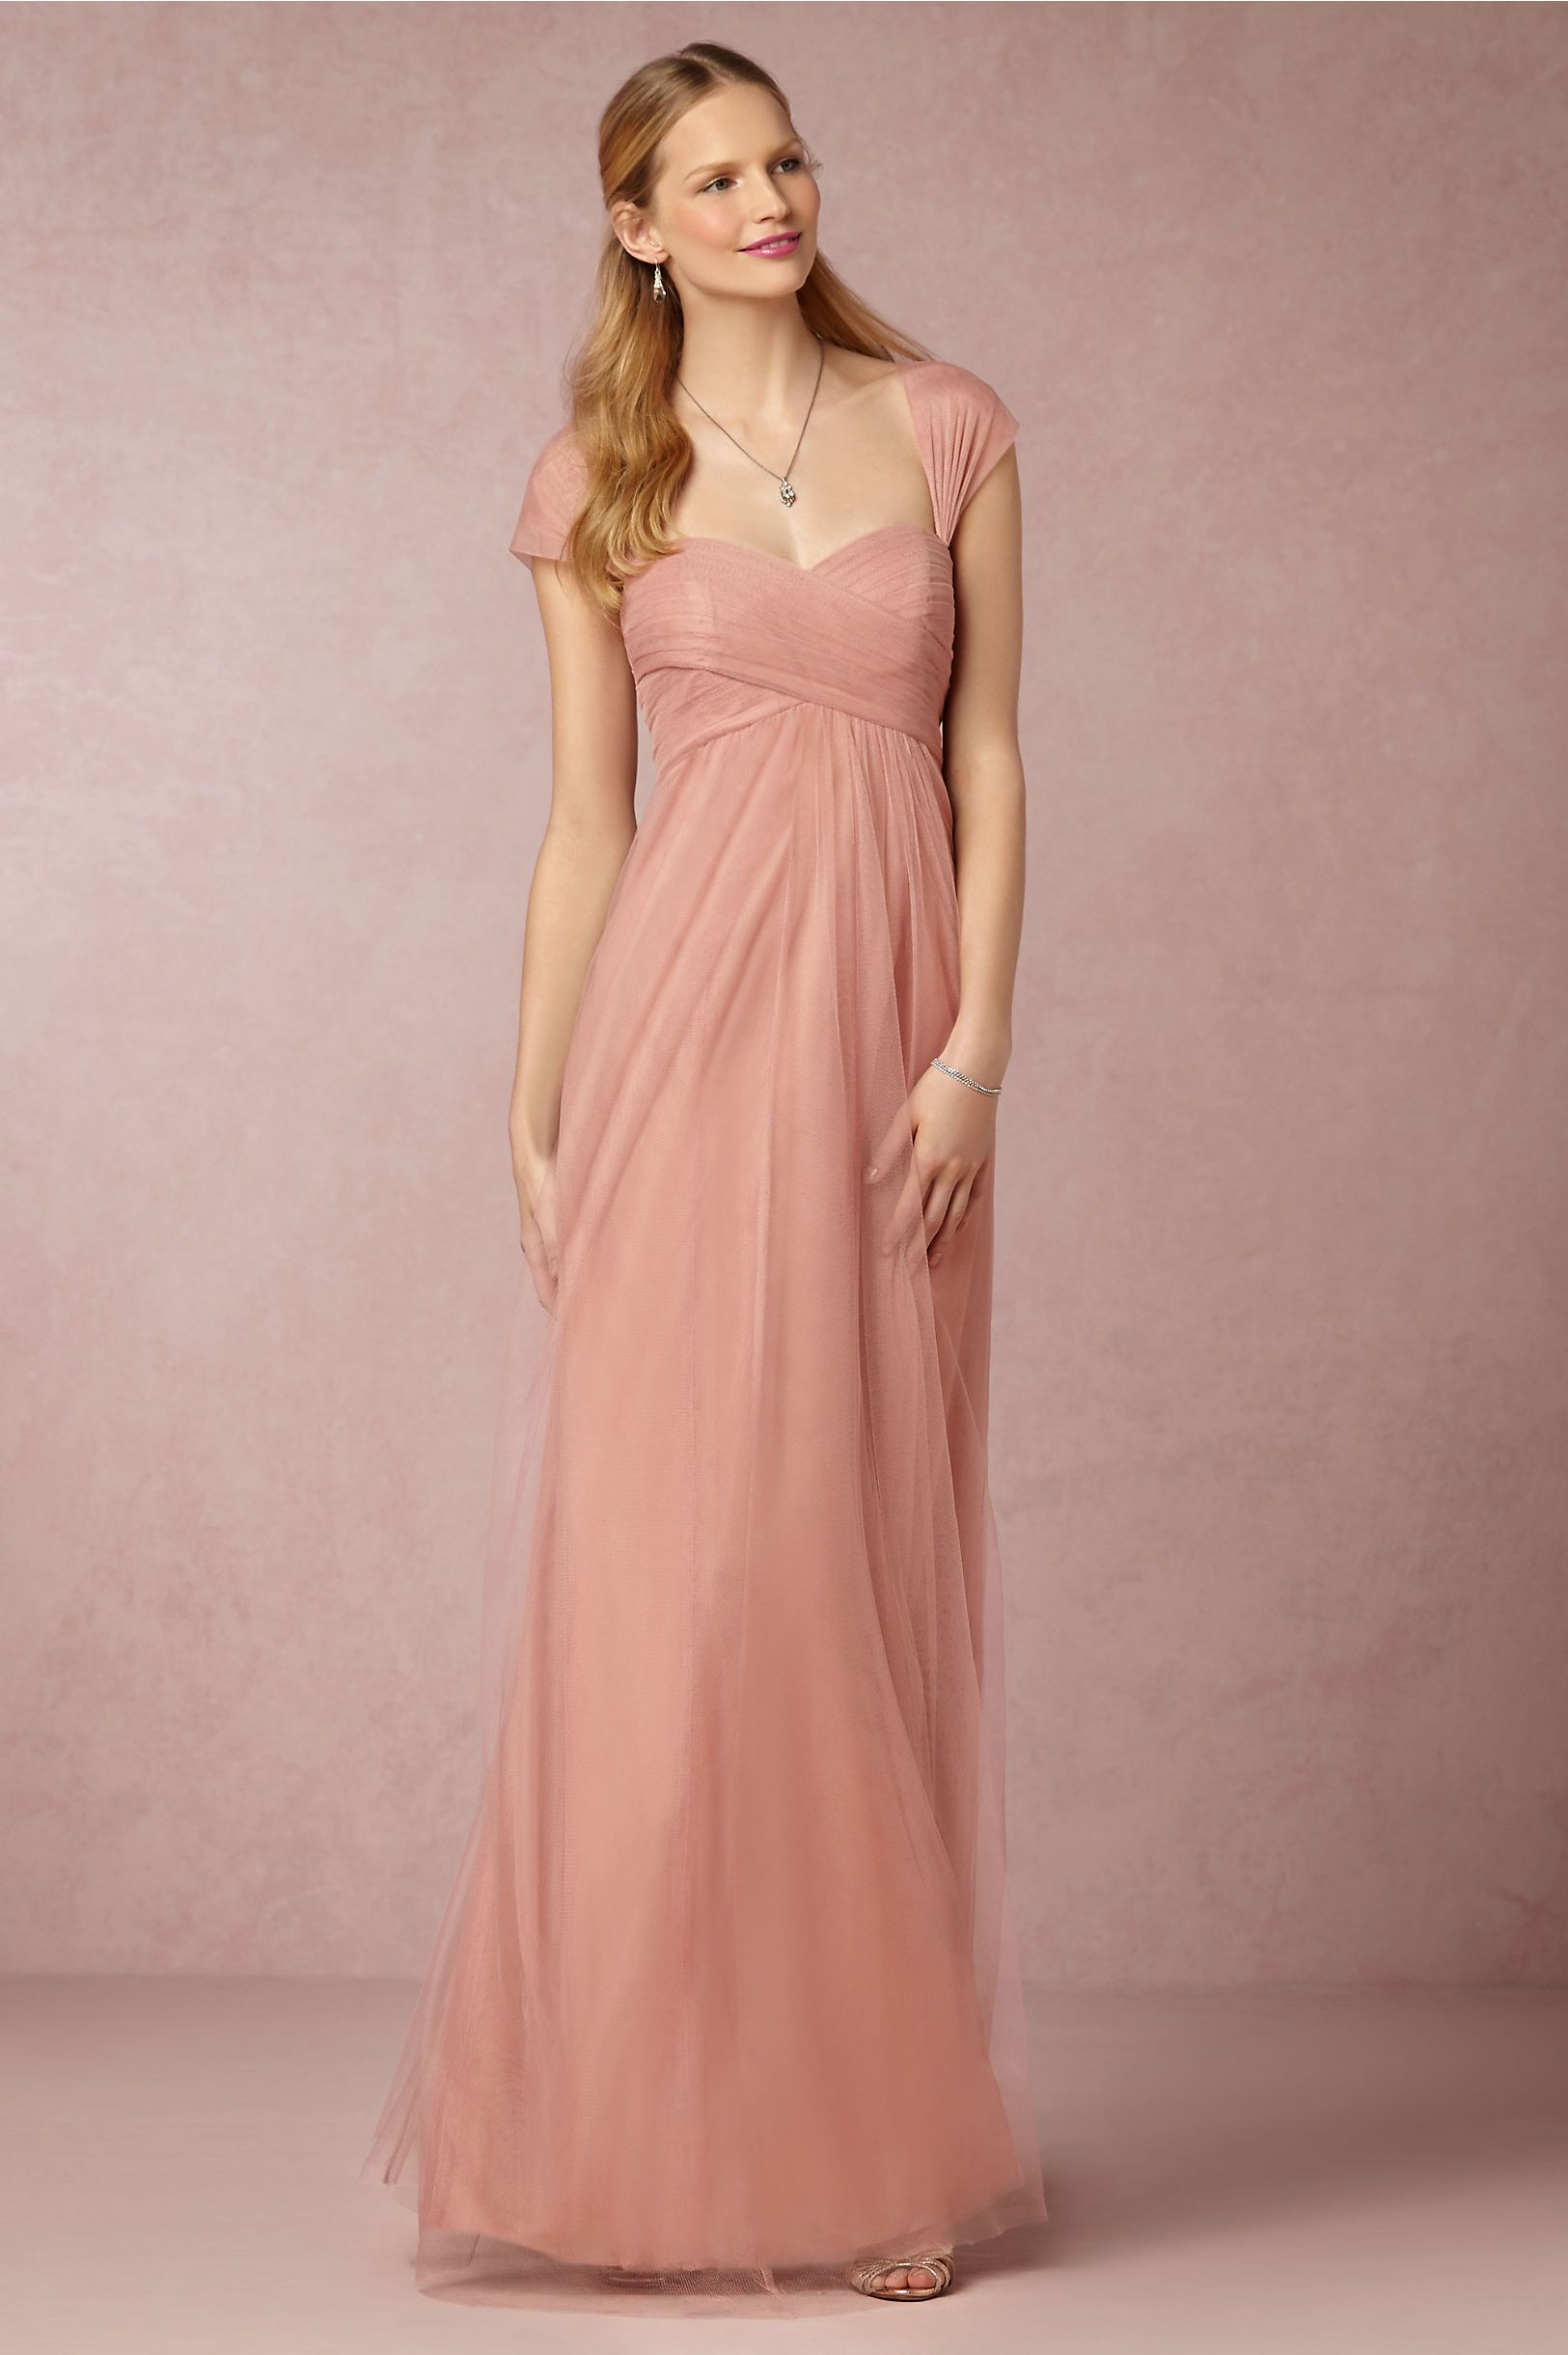 Willow Bridesmaids Dress in begonia pink from @BHLDN | Pastel ...